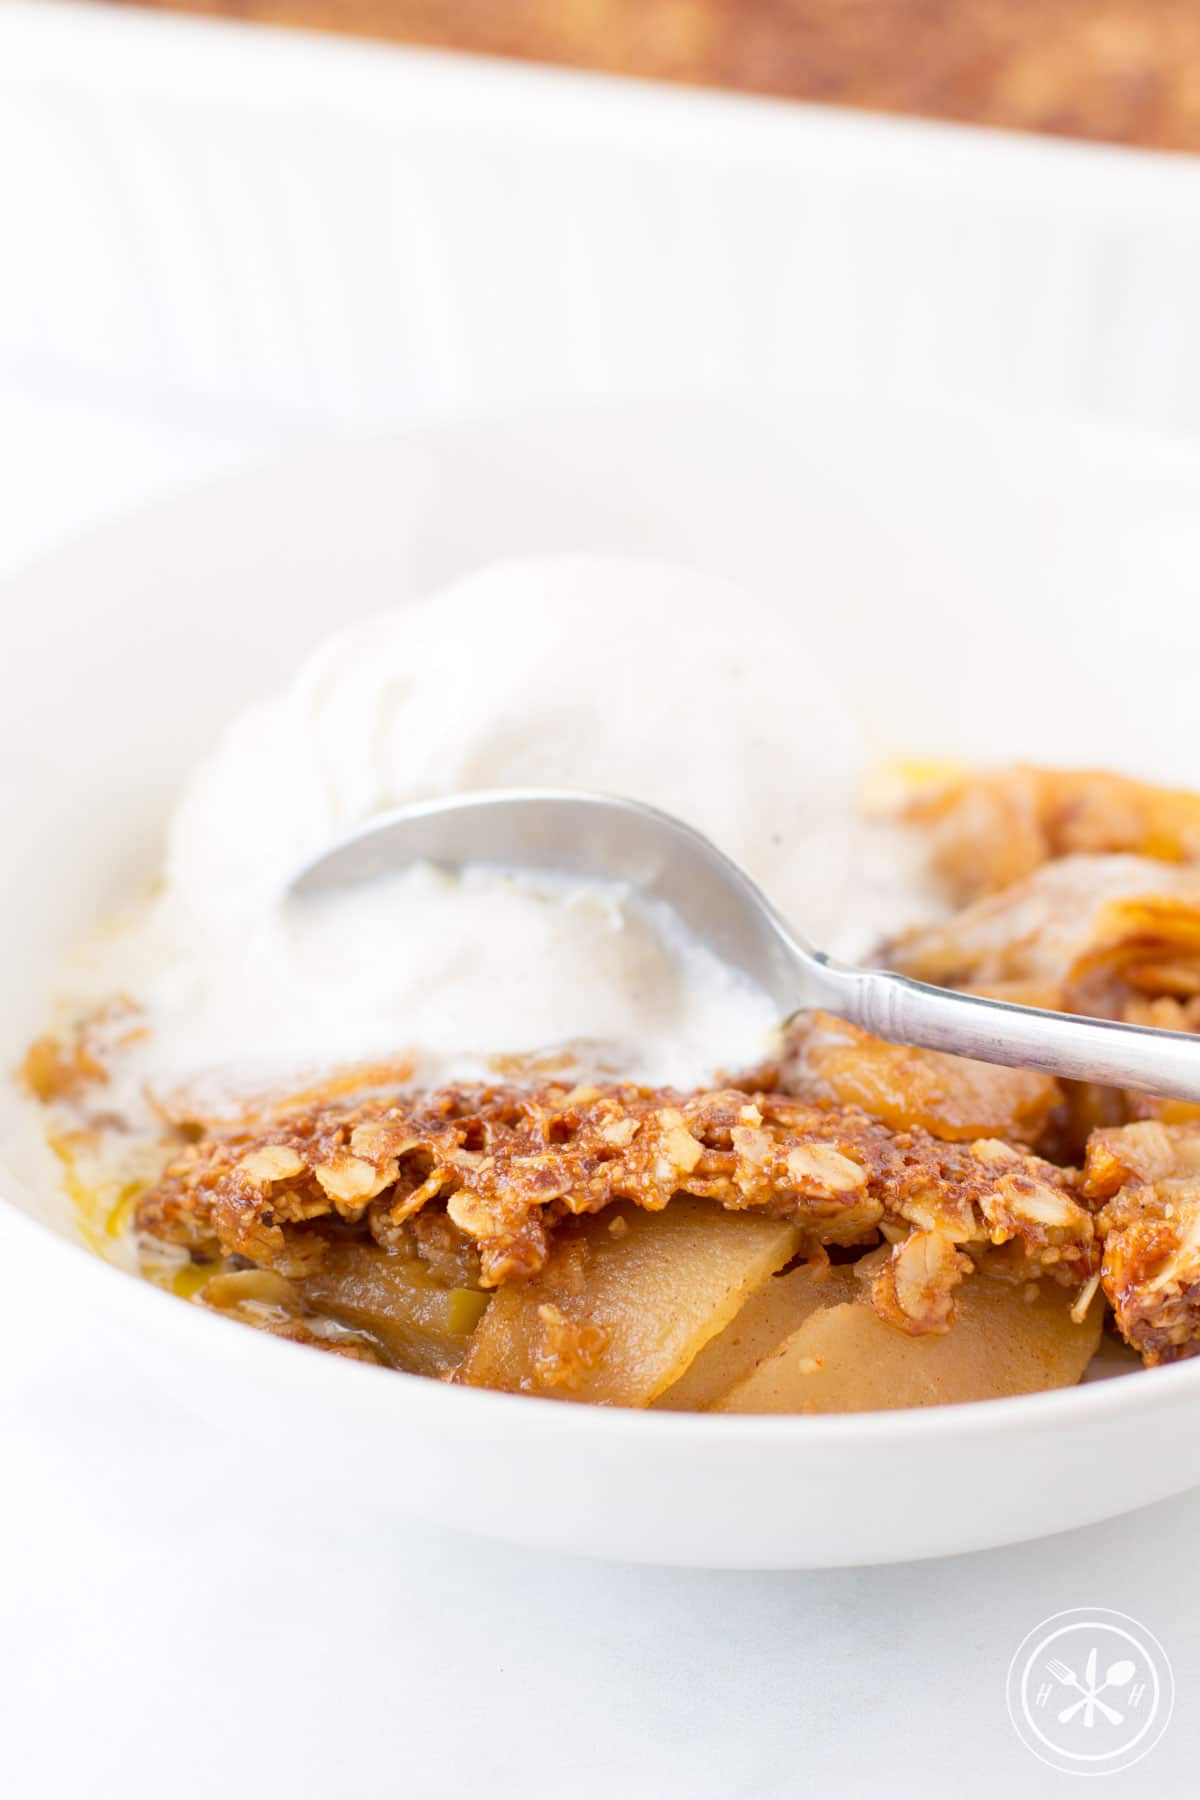 Apple Crisp a la mode with oatmeal topping